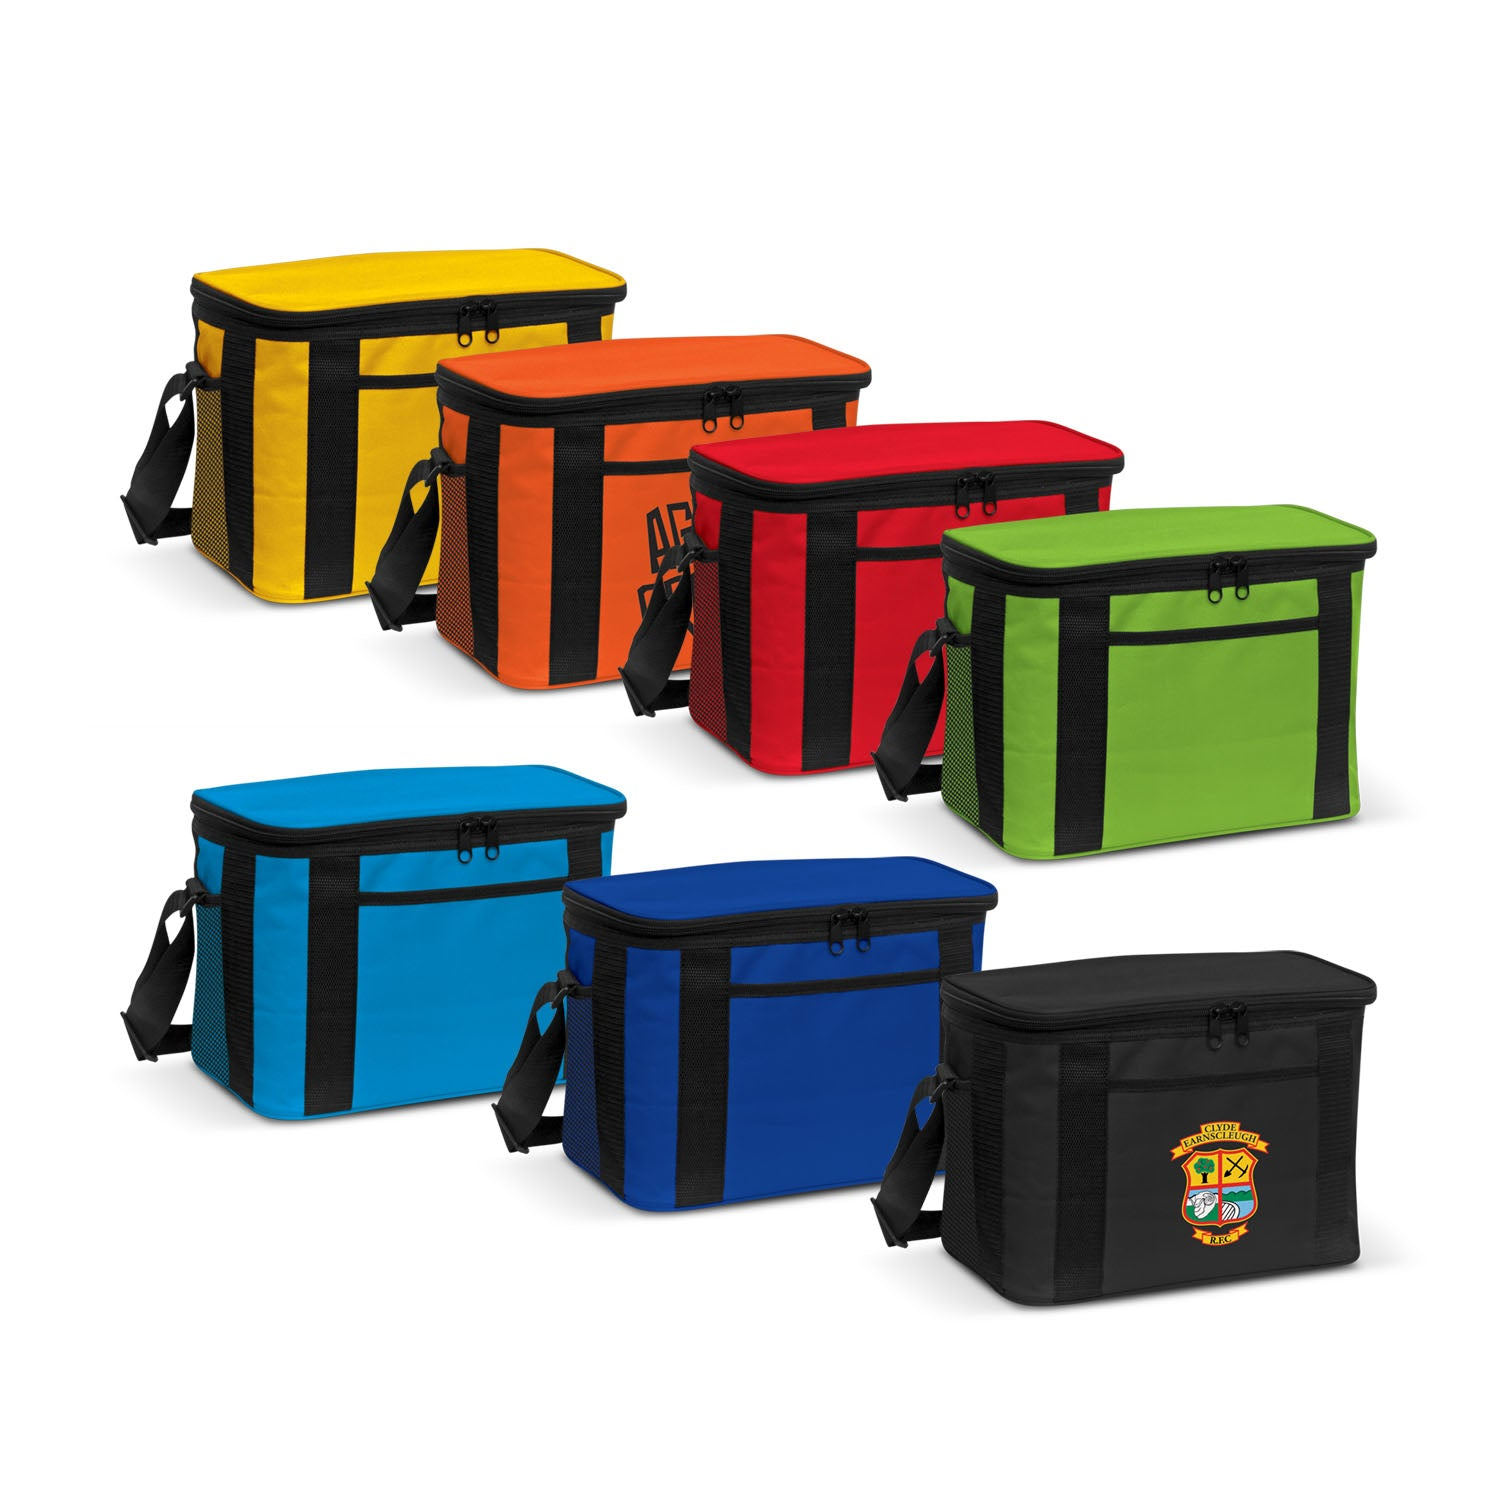 Stock Premium Tundra Cooler Bag(SNB-85T) - greenpac.com.au